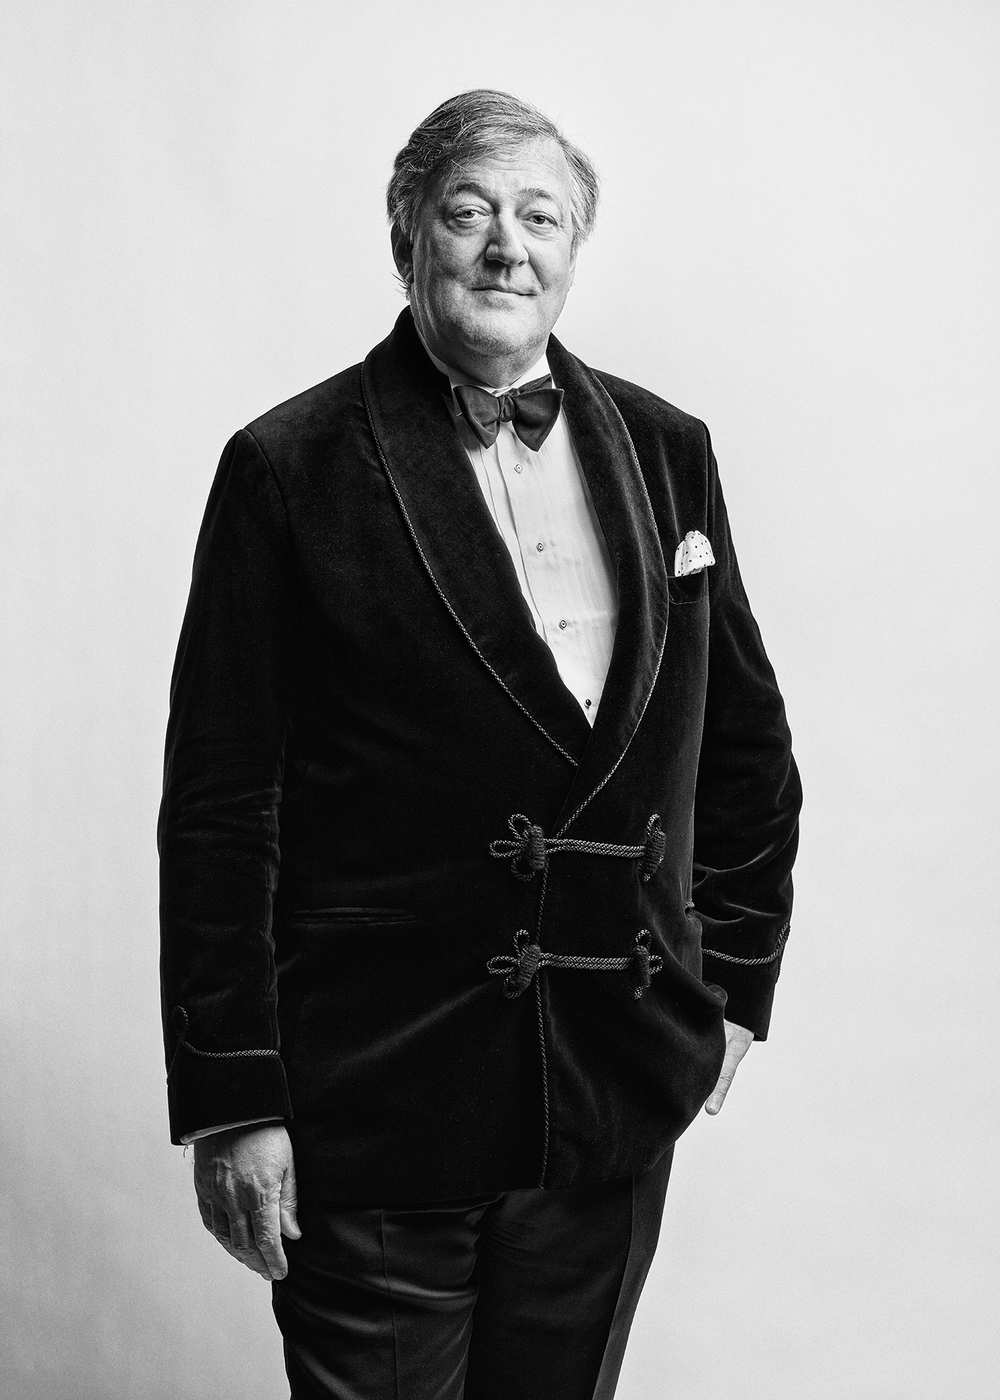 Stephen Fry – Actor / Writer